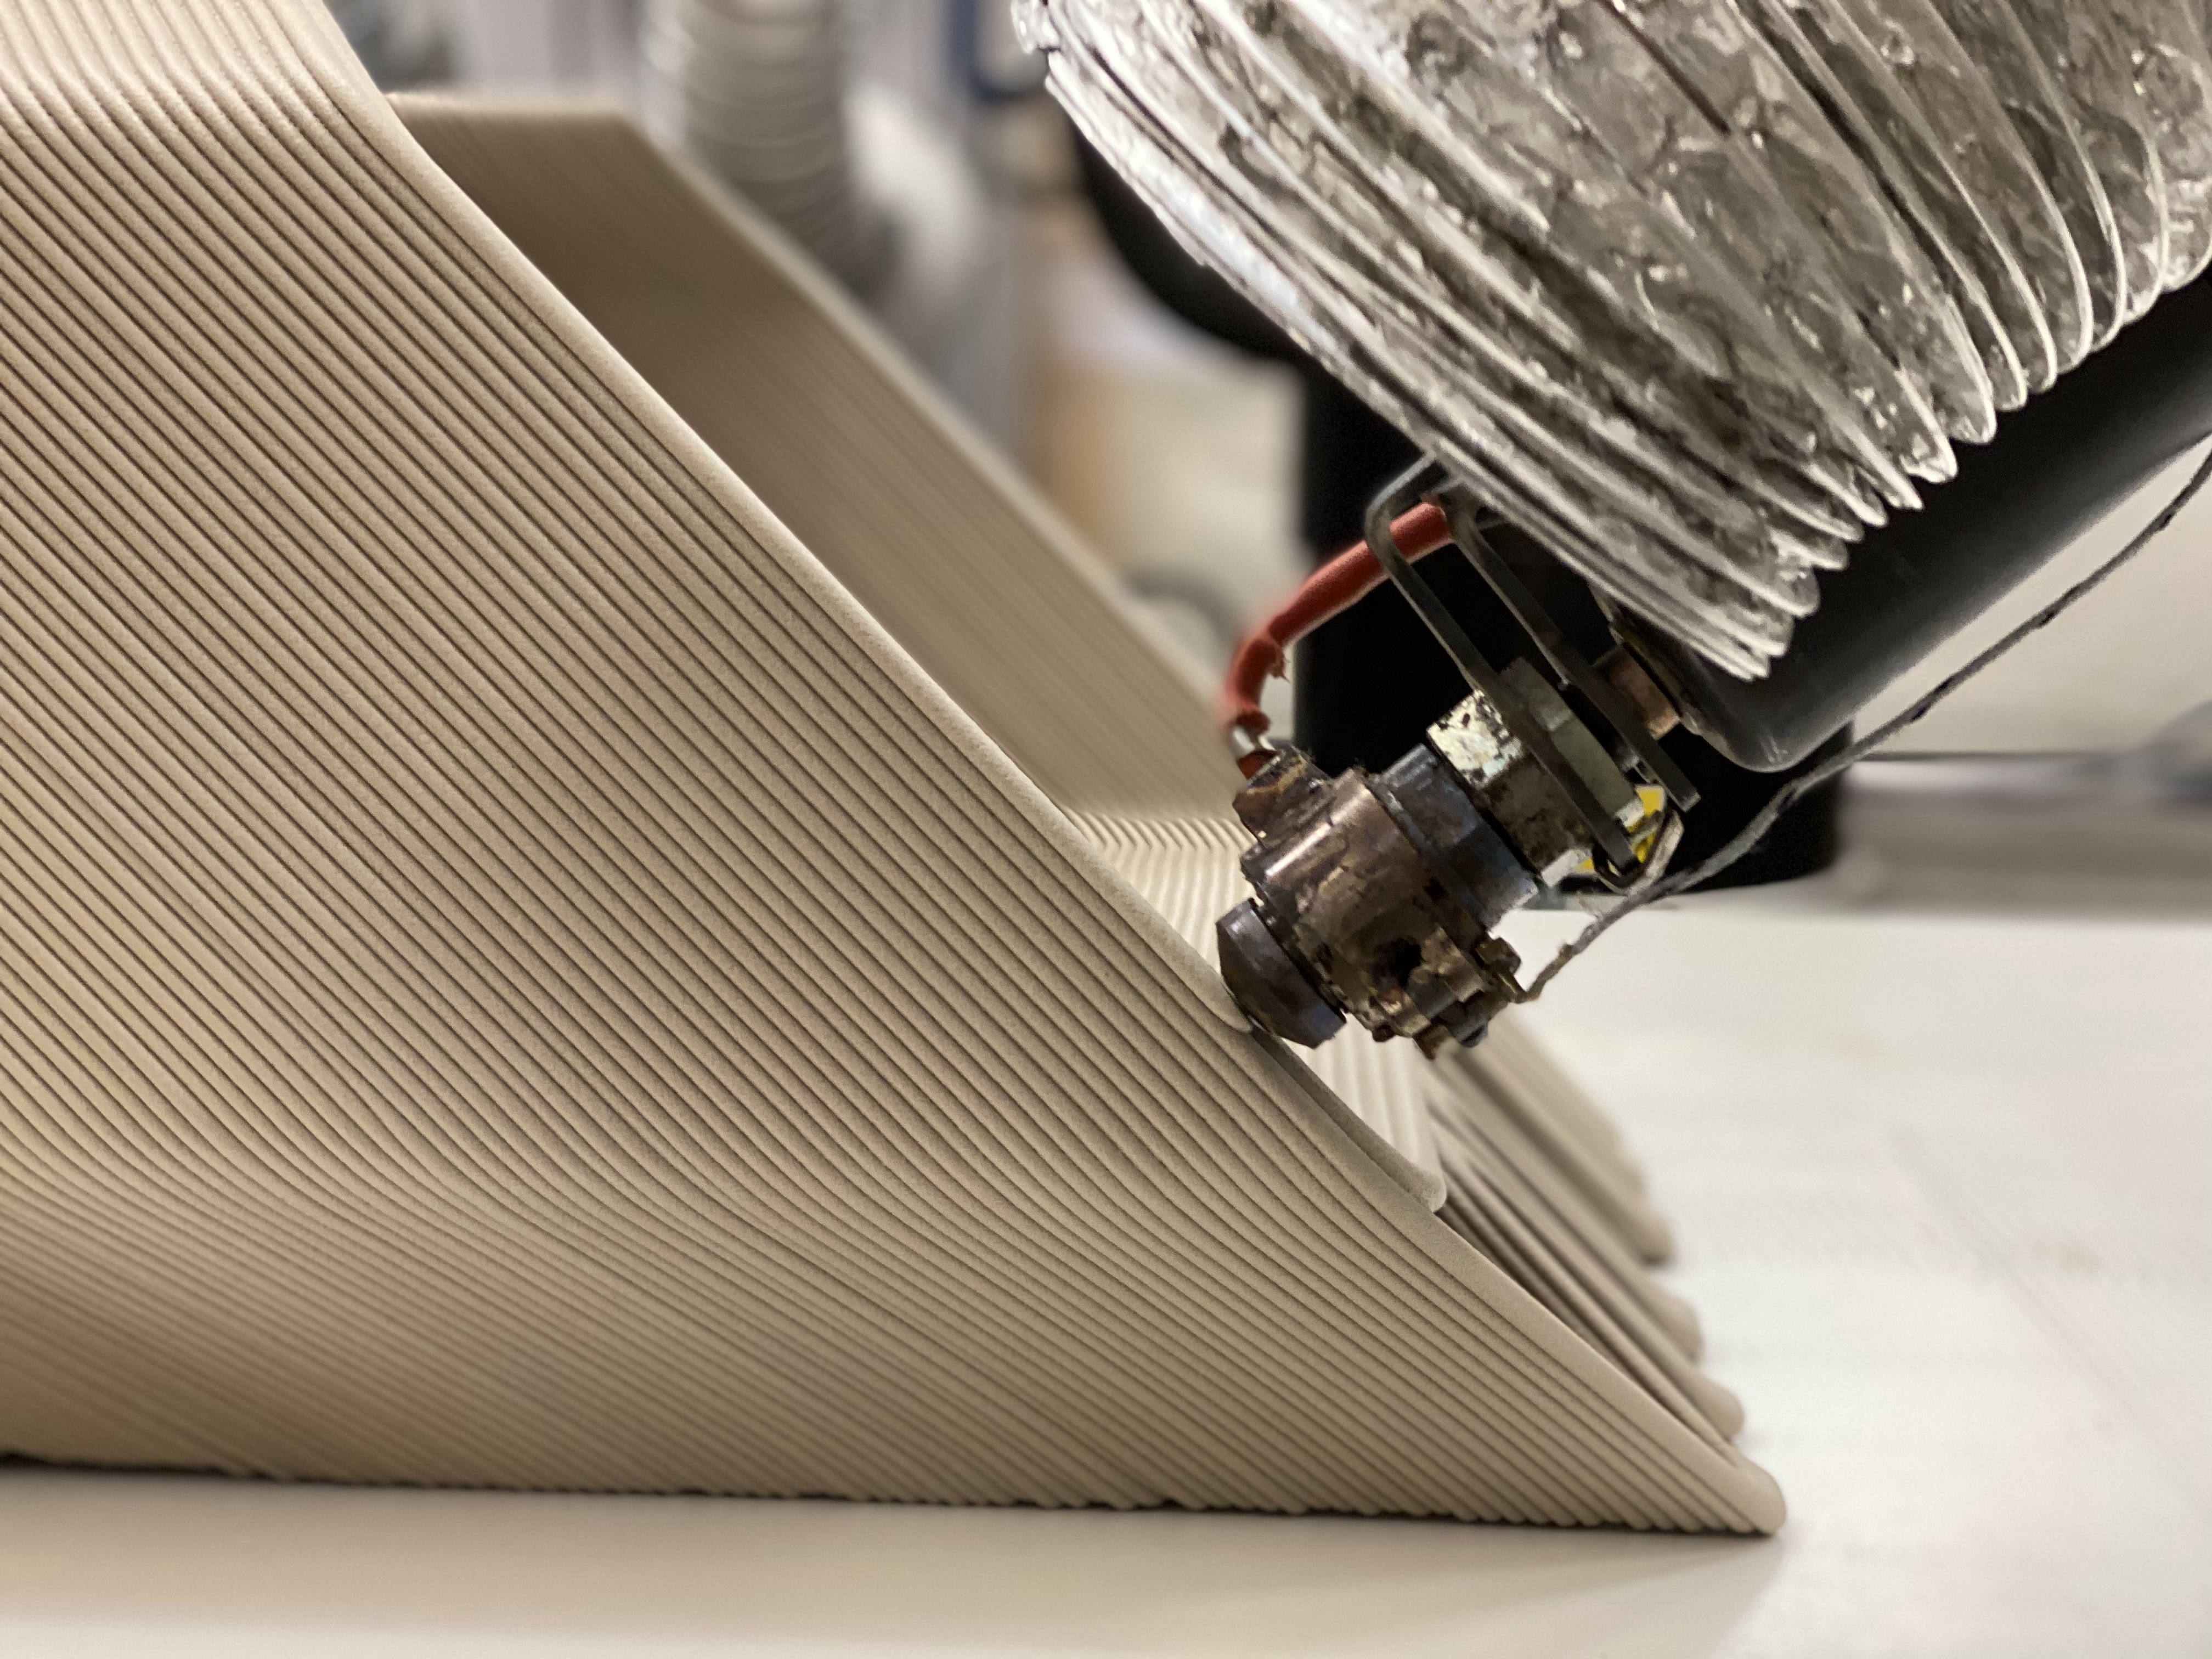 The ZUV's body was 3D printed at an angle to reduce the need for structural supports